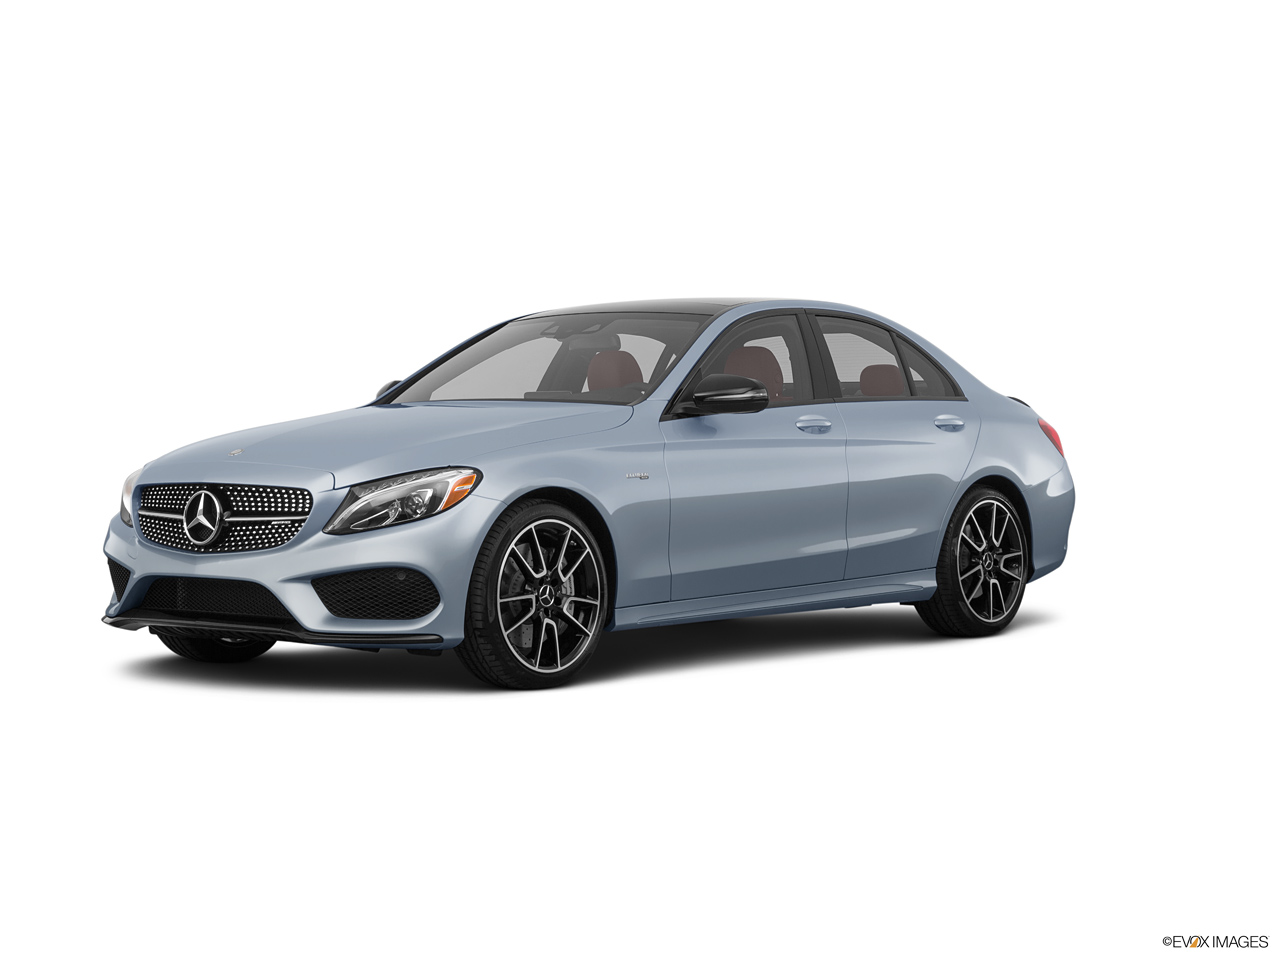 Car pictures list for mercedes benz c class 2018 c 43 amg for Mercedes benz payment estimator